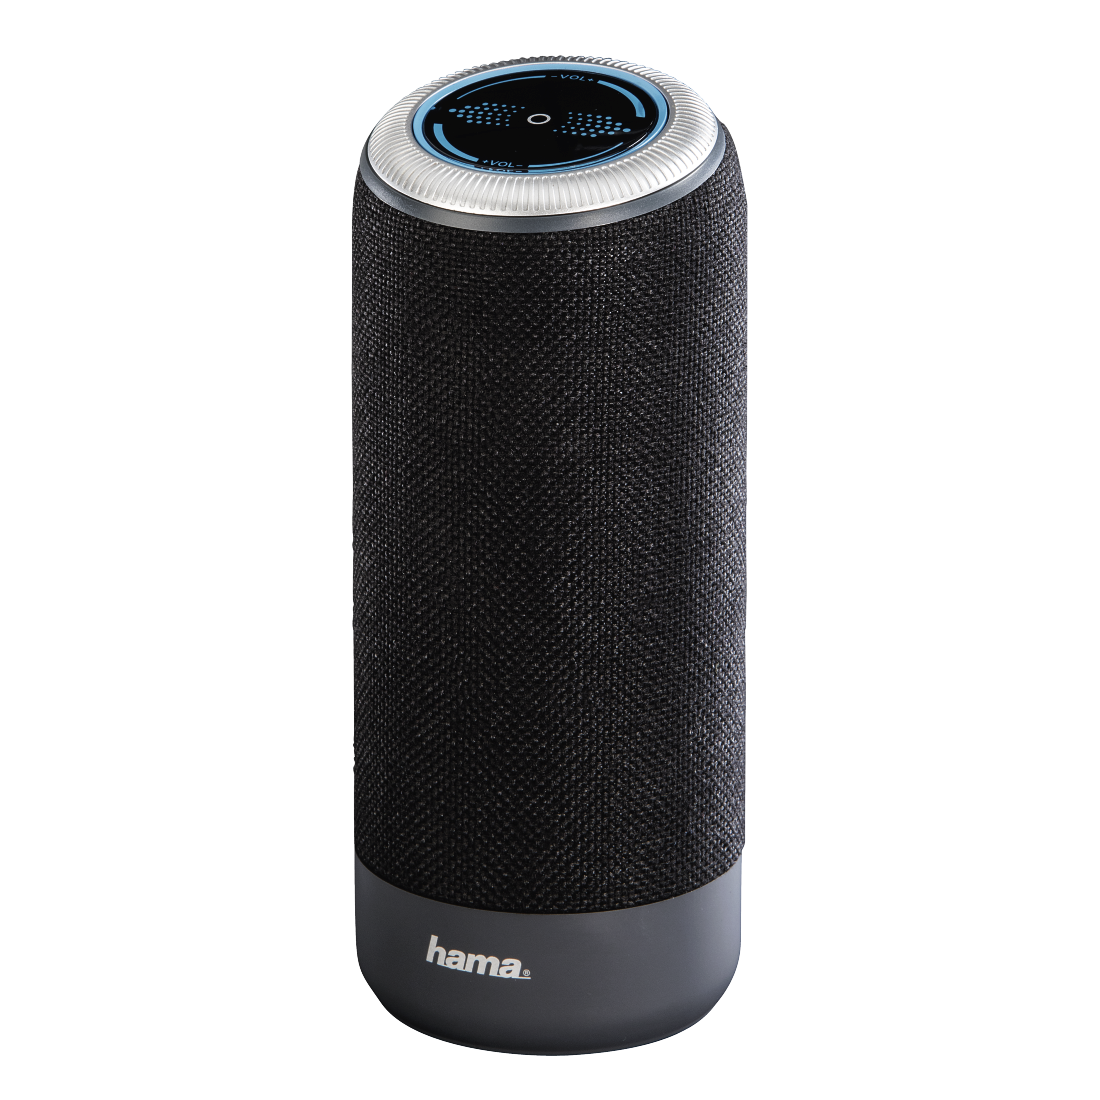 abx High-Res Image - Hama, Mobiele Bluetooth-luidspreker Soundcup-S